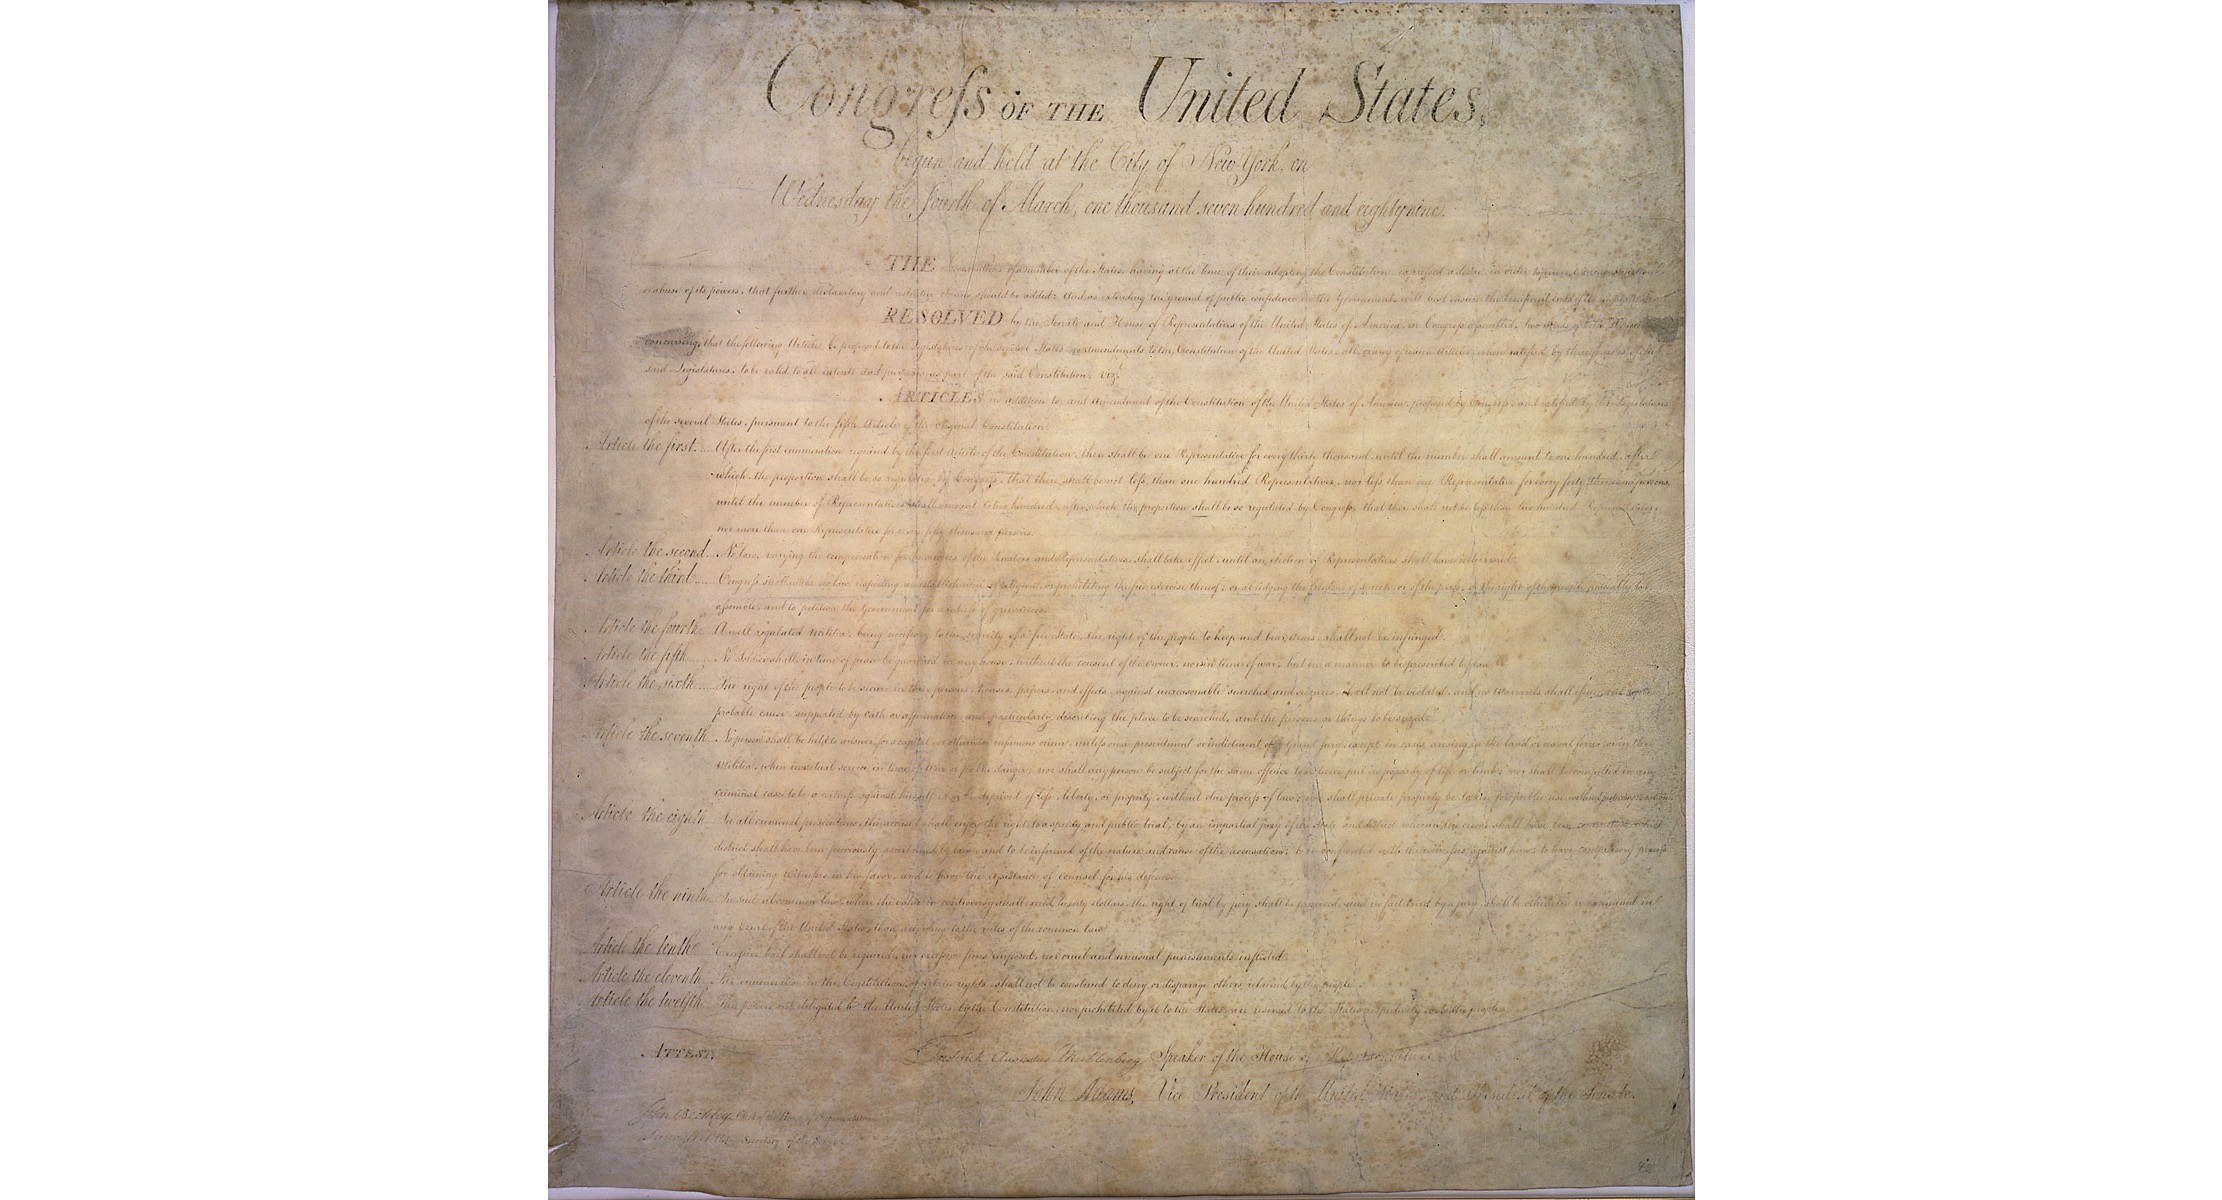 Constitution 101: The Bill of Rights